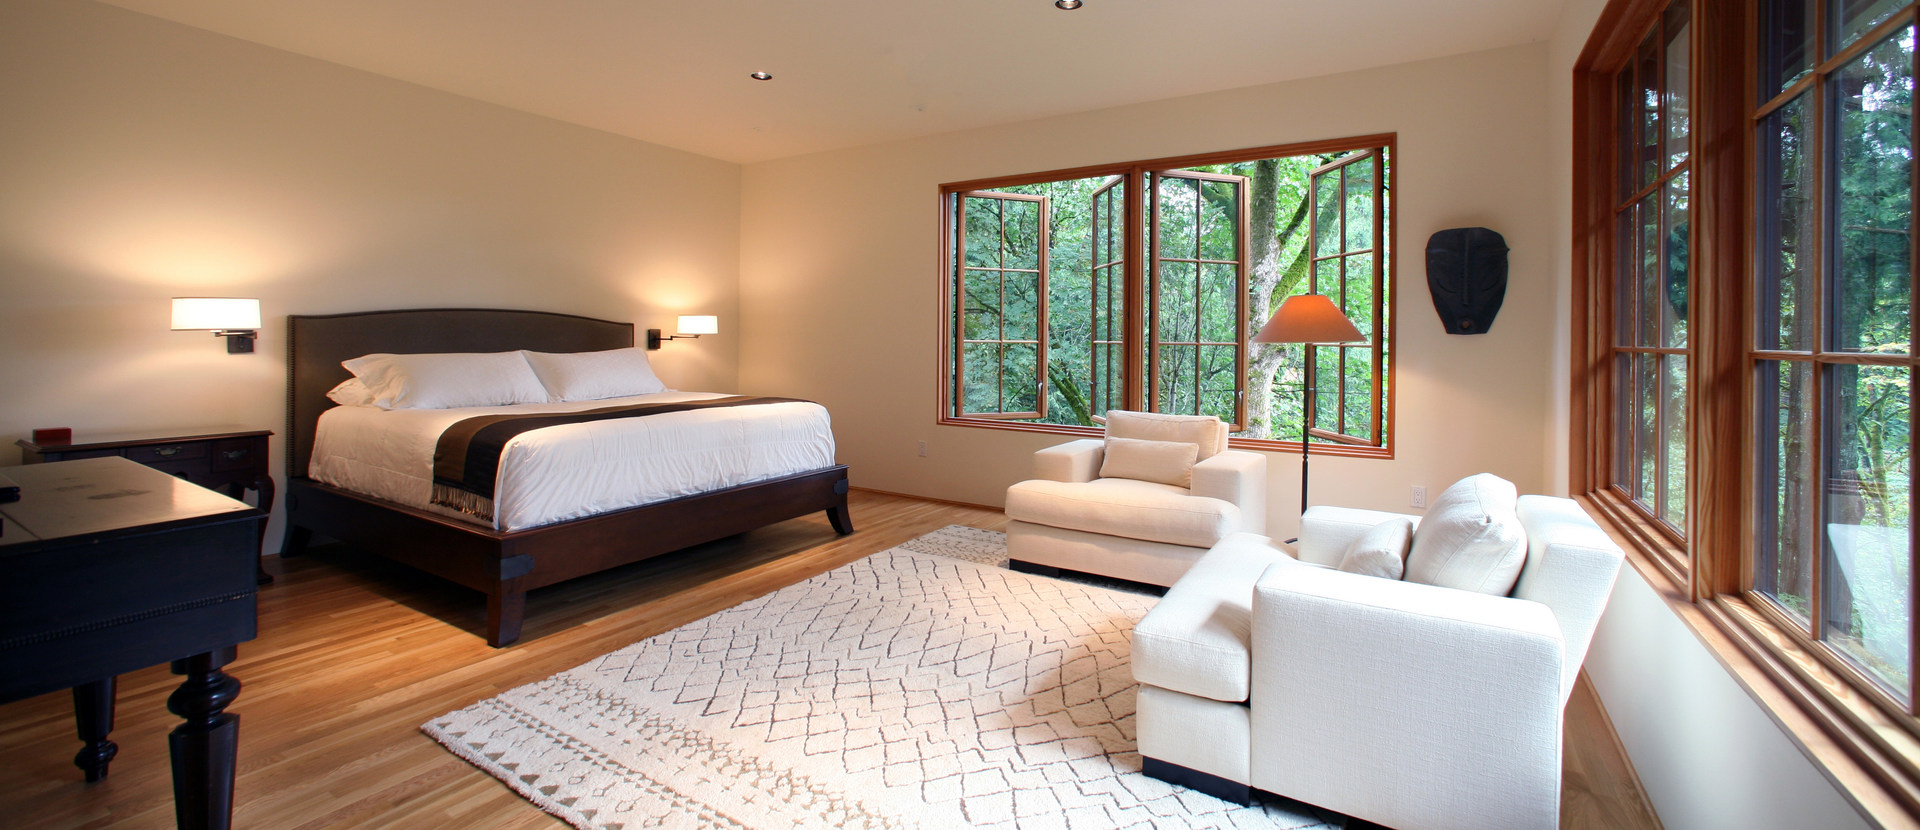 CLEAN AND RICH MASTER BEDROOM